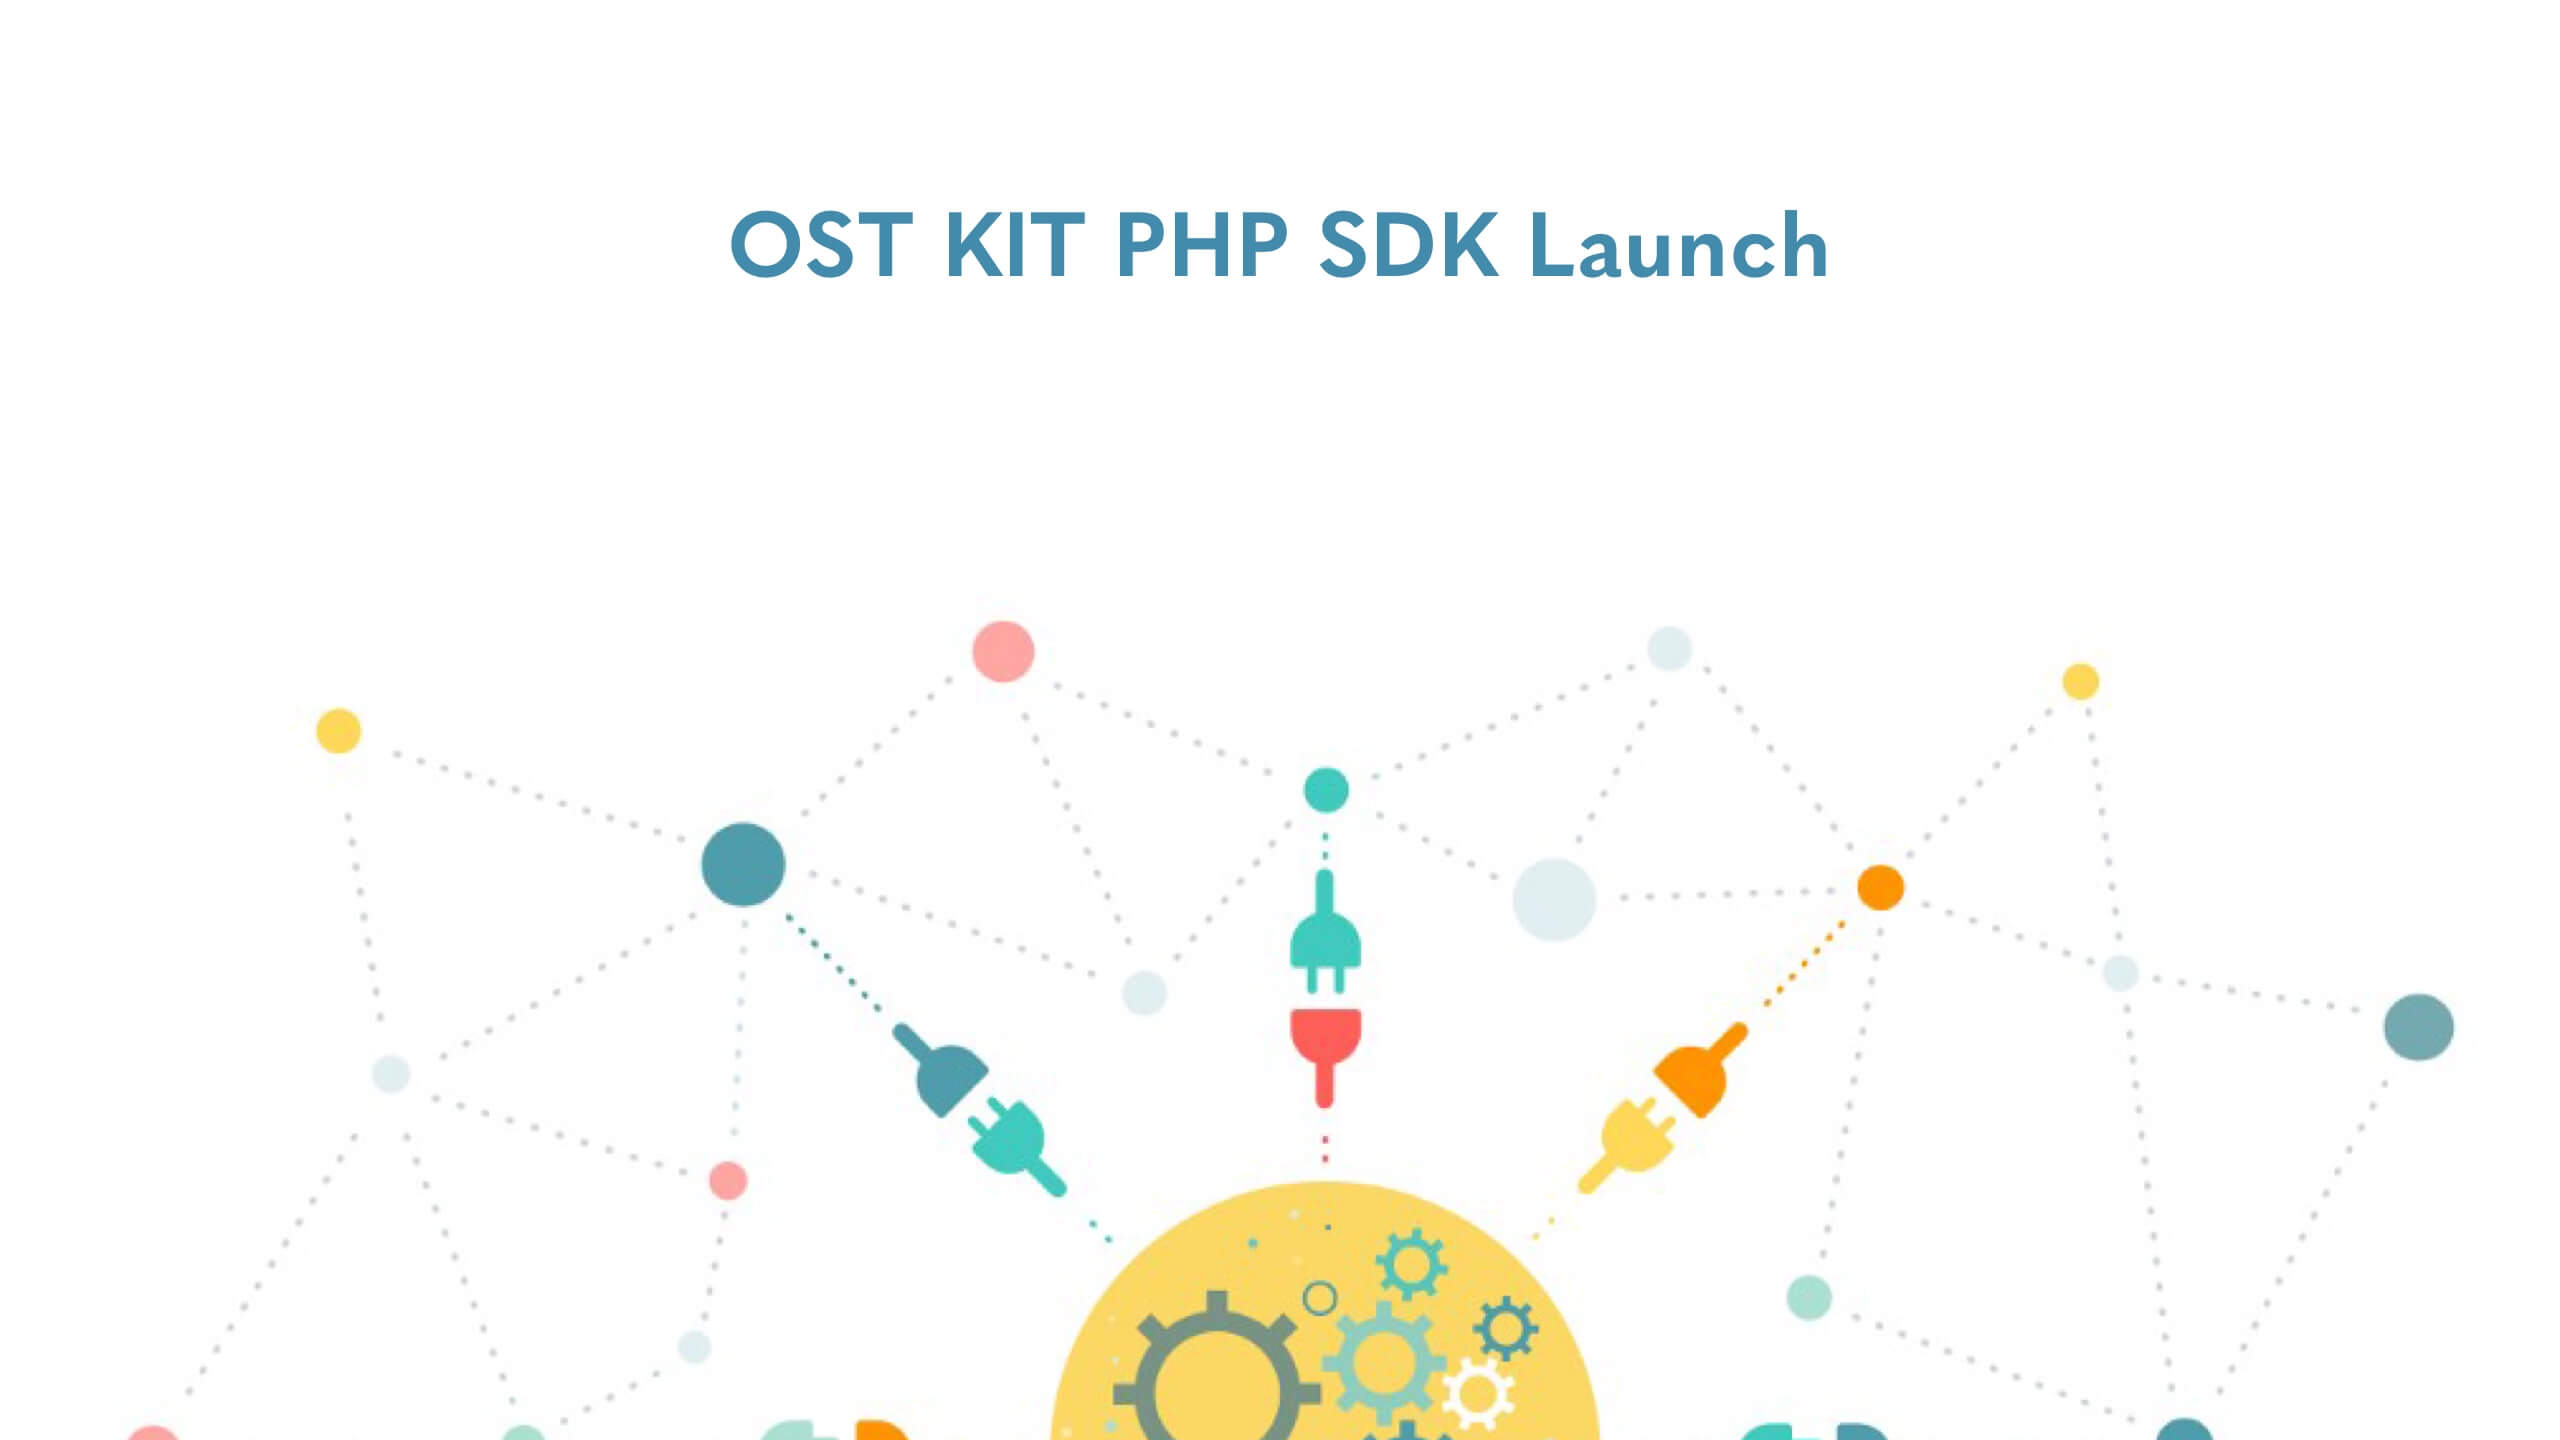 OST KIT PHP SDK Launch